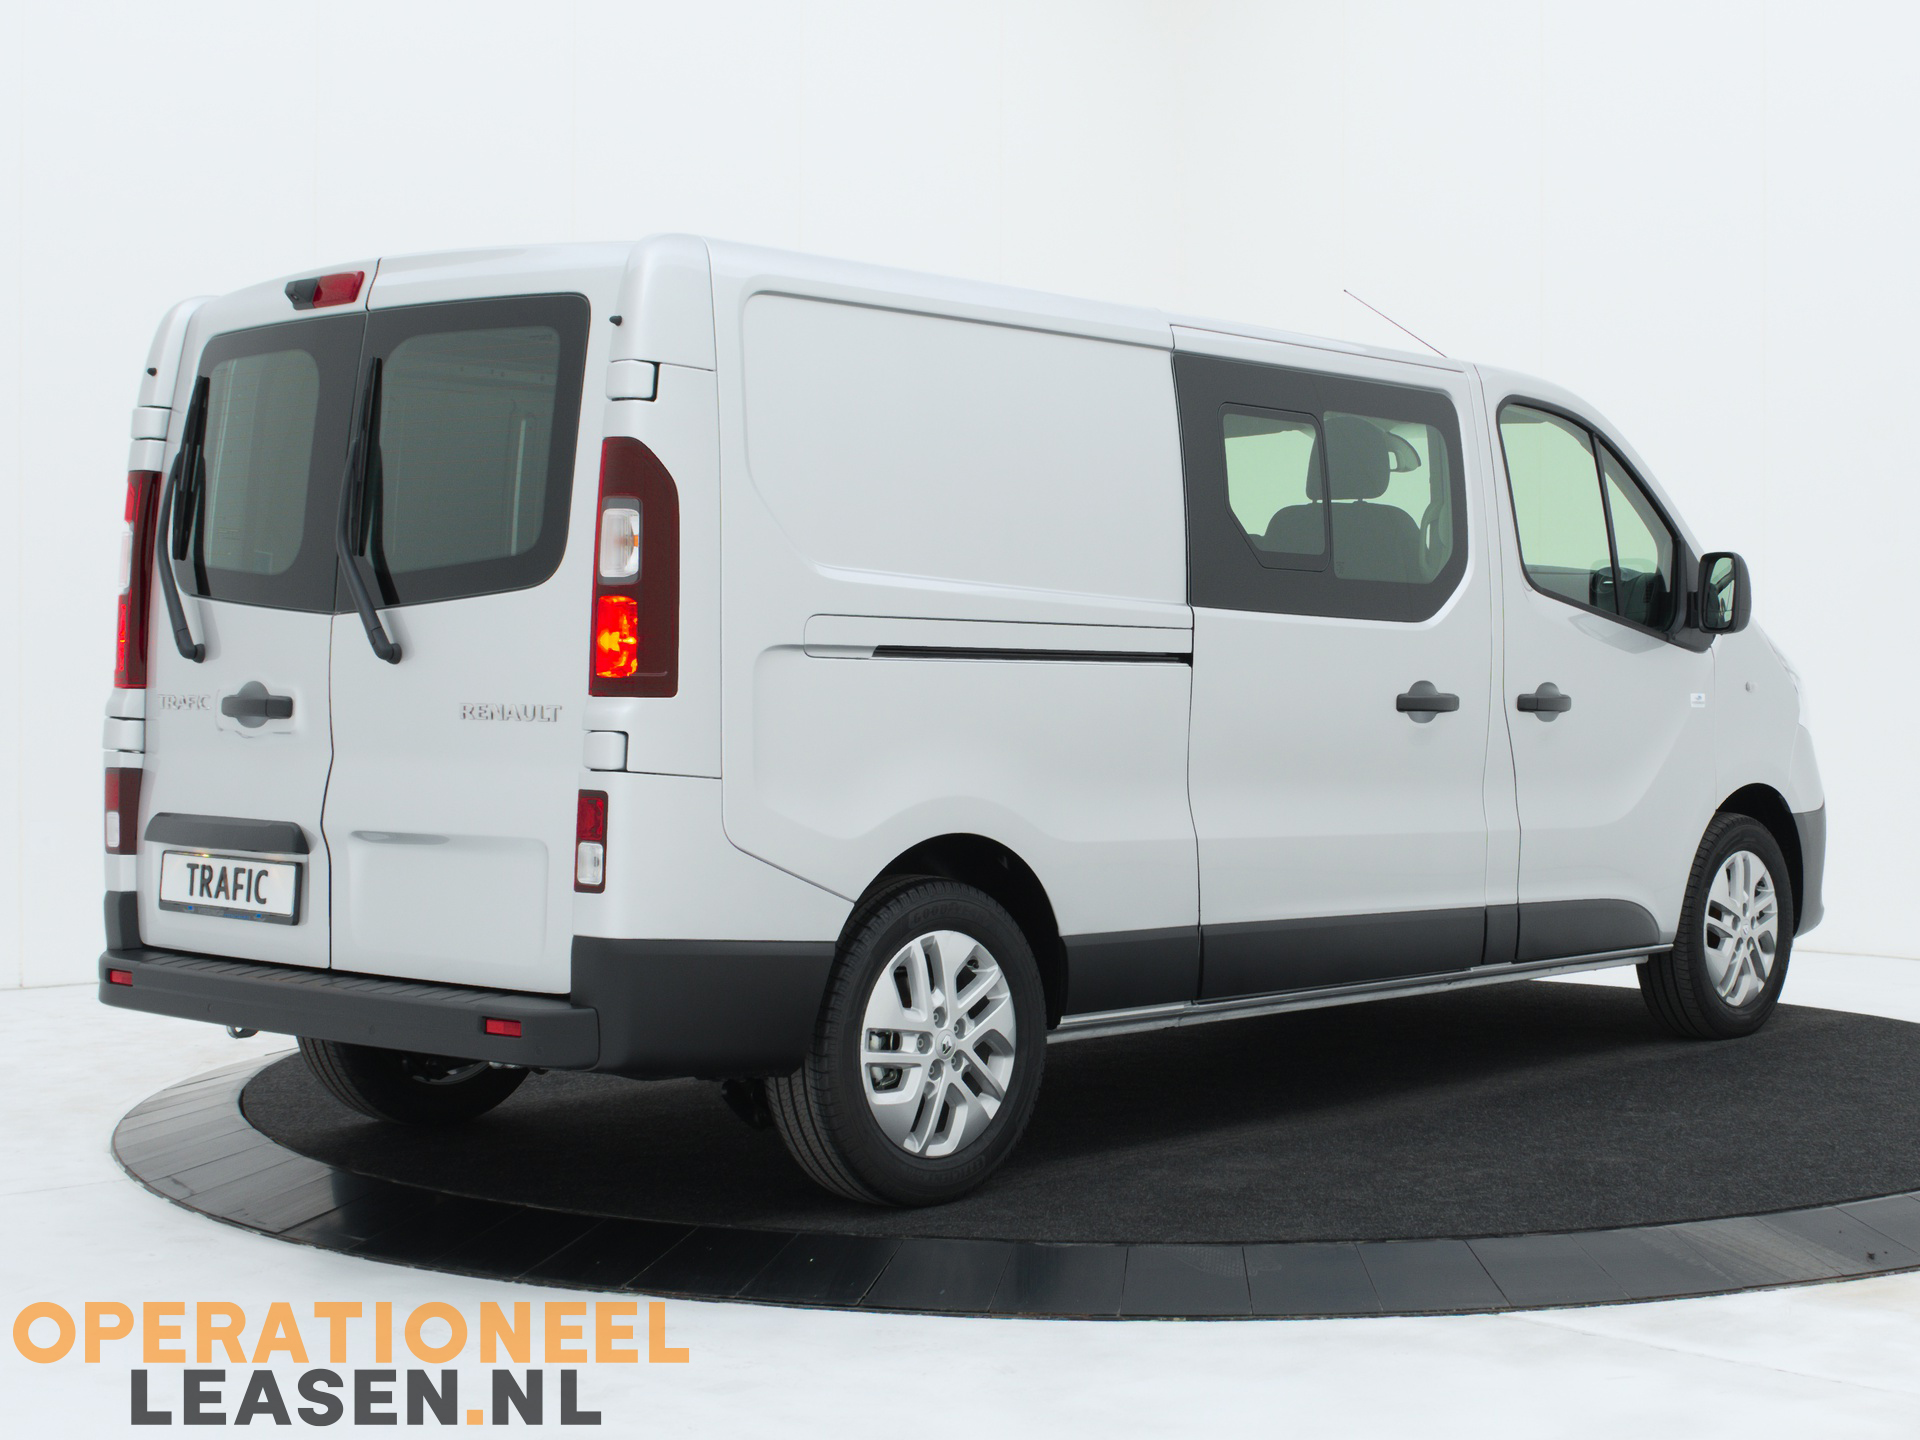 Operational lease Renault master traffic-2